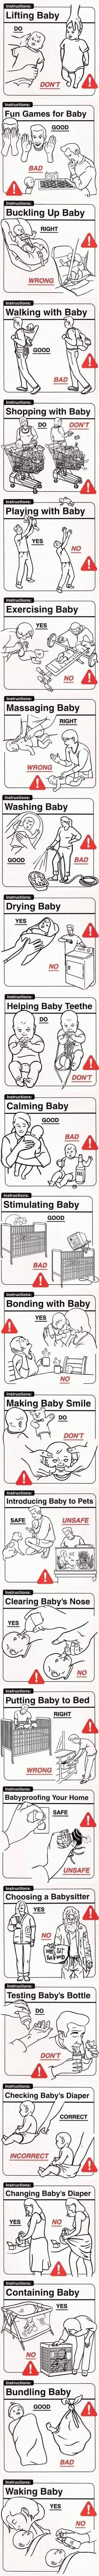 Instructions-for-Baby